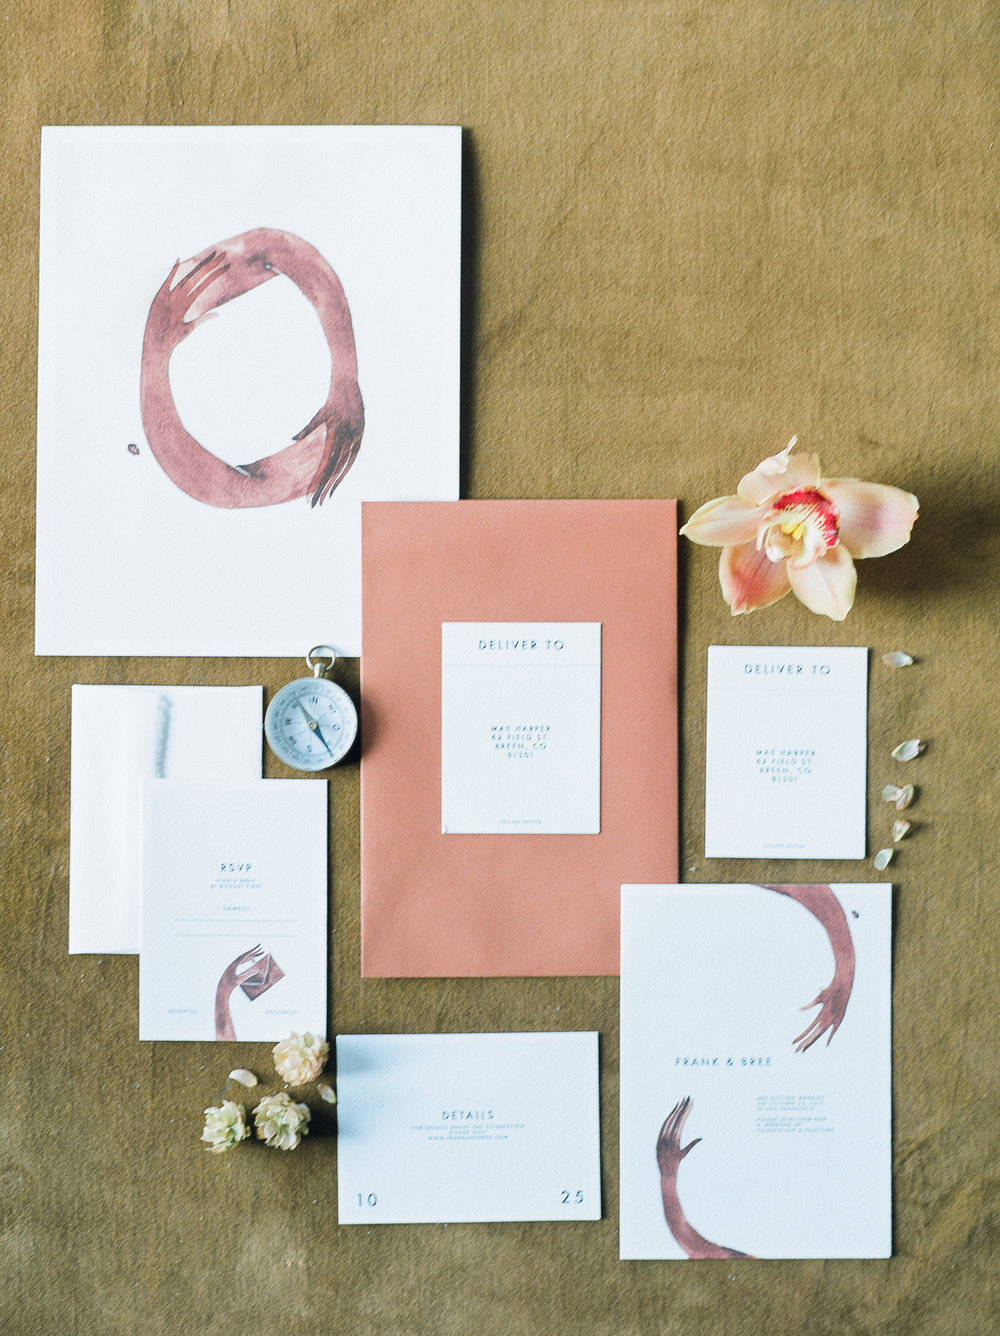 Bodega Ridge Wedding, Vancouver Wedding Photographer, Tofino Wedding, Vancouver Island Wedding, The Wells Makery Stationery